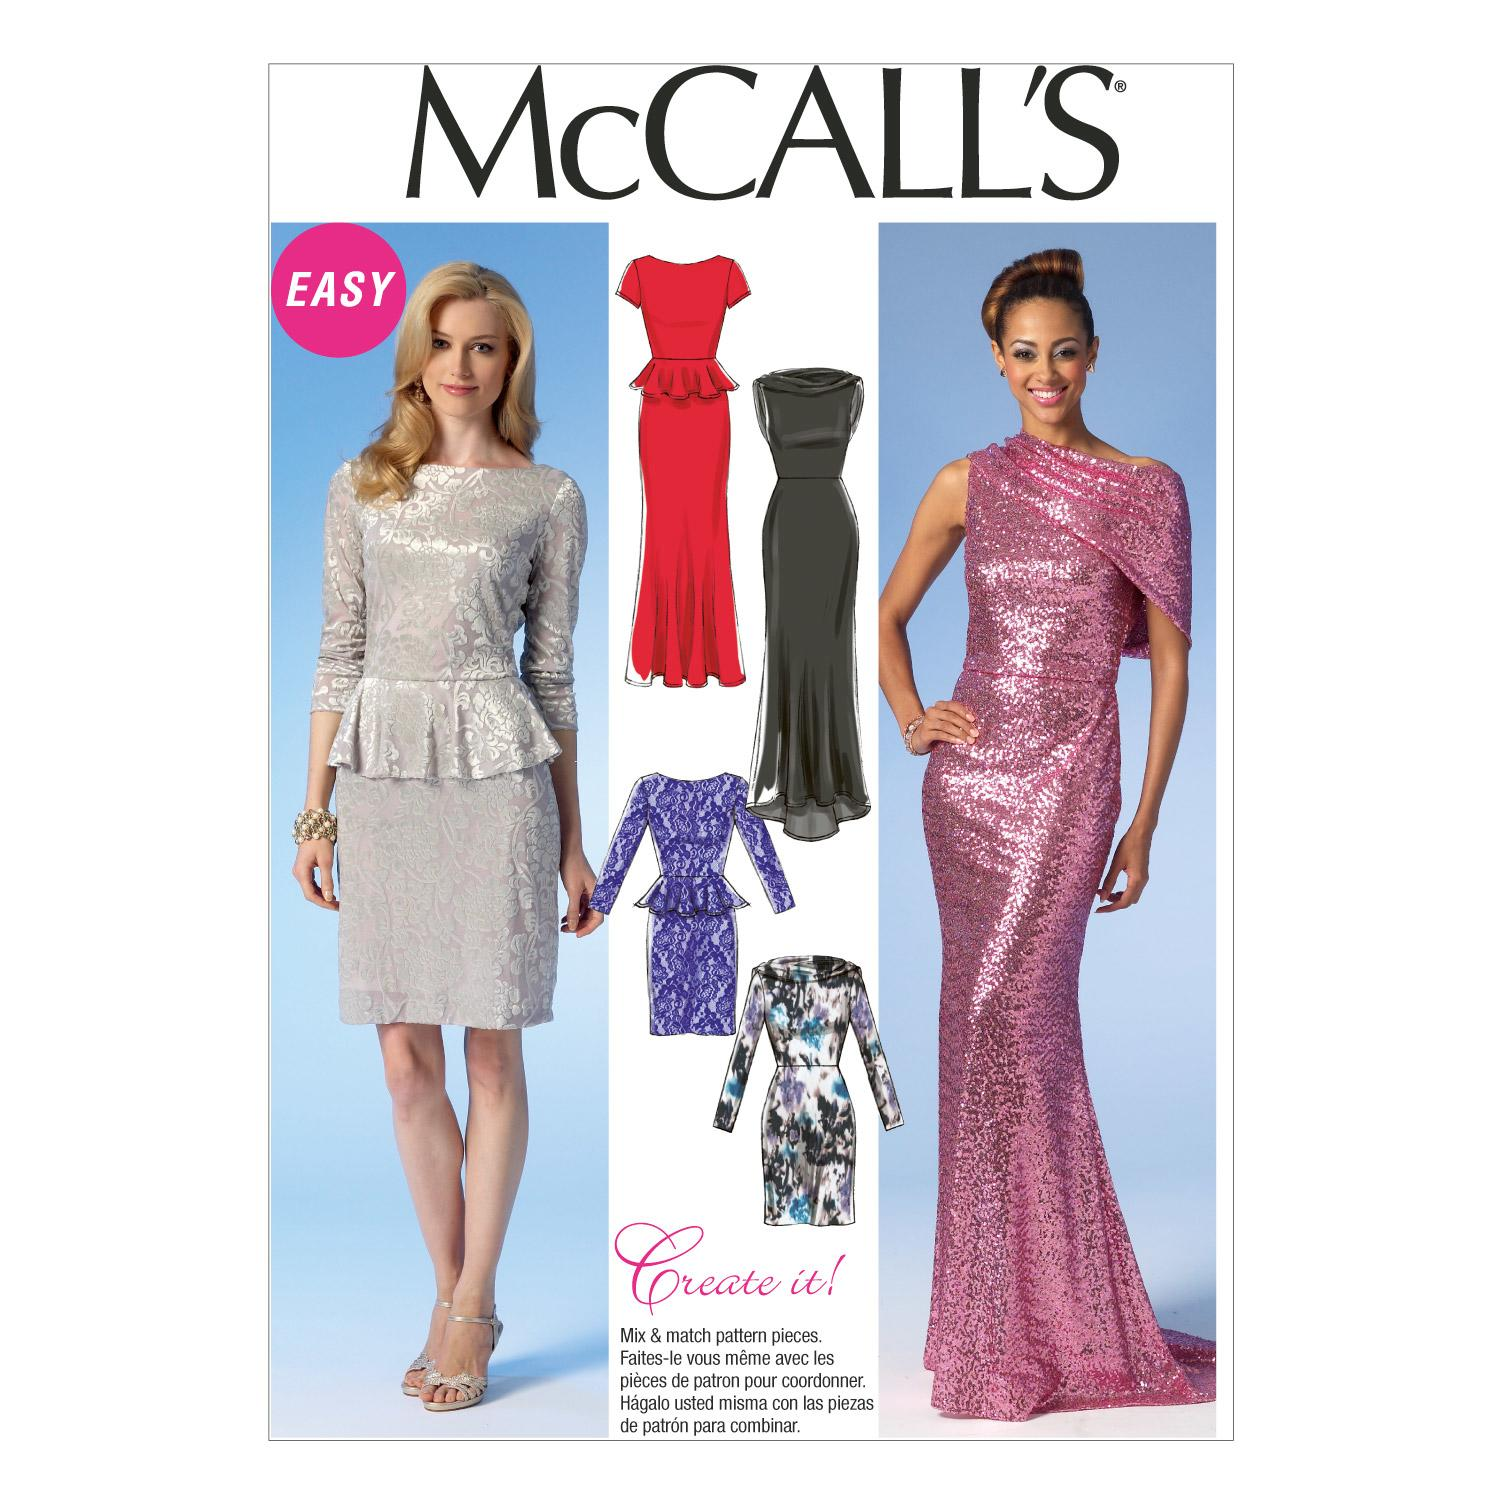 McCalls M7047 Dresses, Evening/Prom